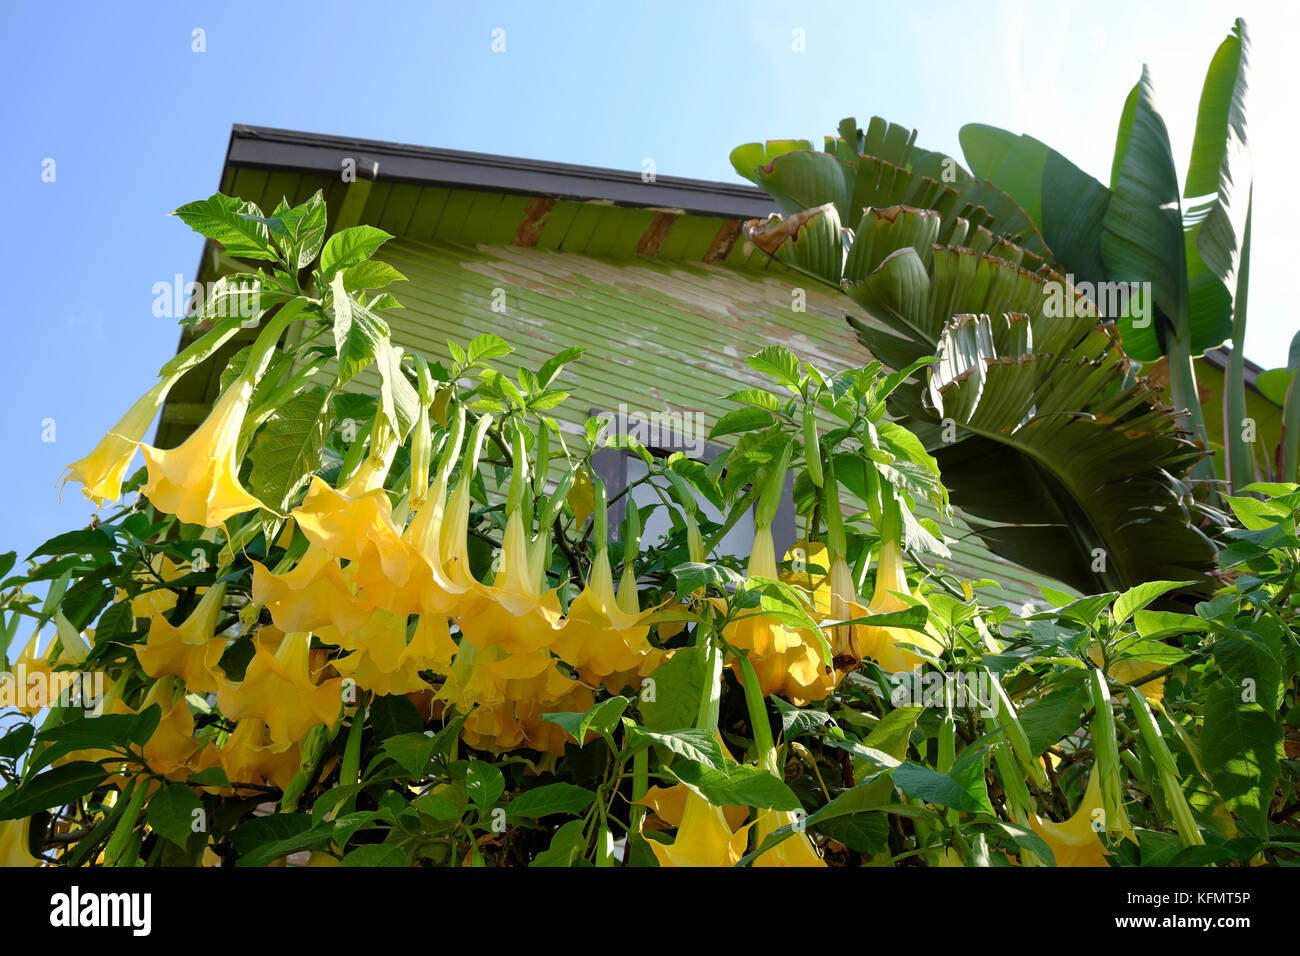 Yellow brugmansia angels trumpet stock photos yellow brugmansia yellow brugmansia or angels trumpet flowering shrub growing outside a house in frogtown los angeles mightylinksfo